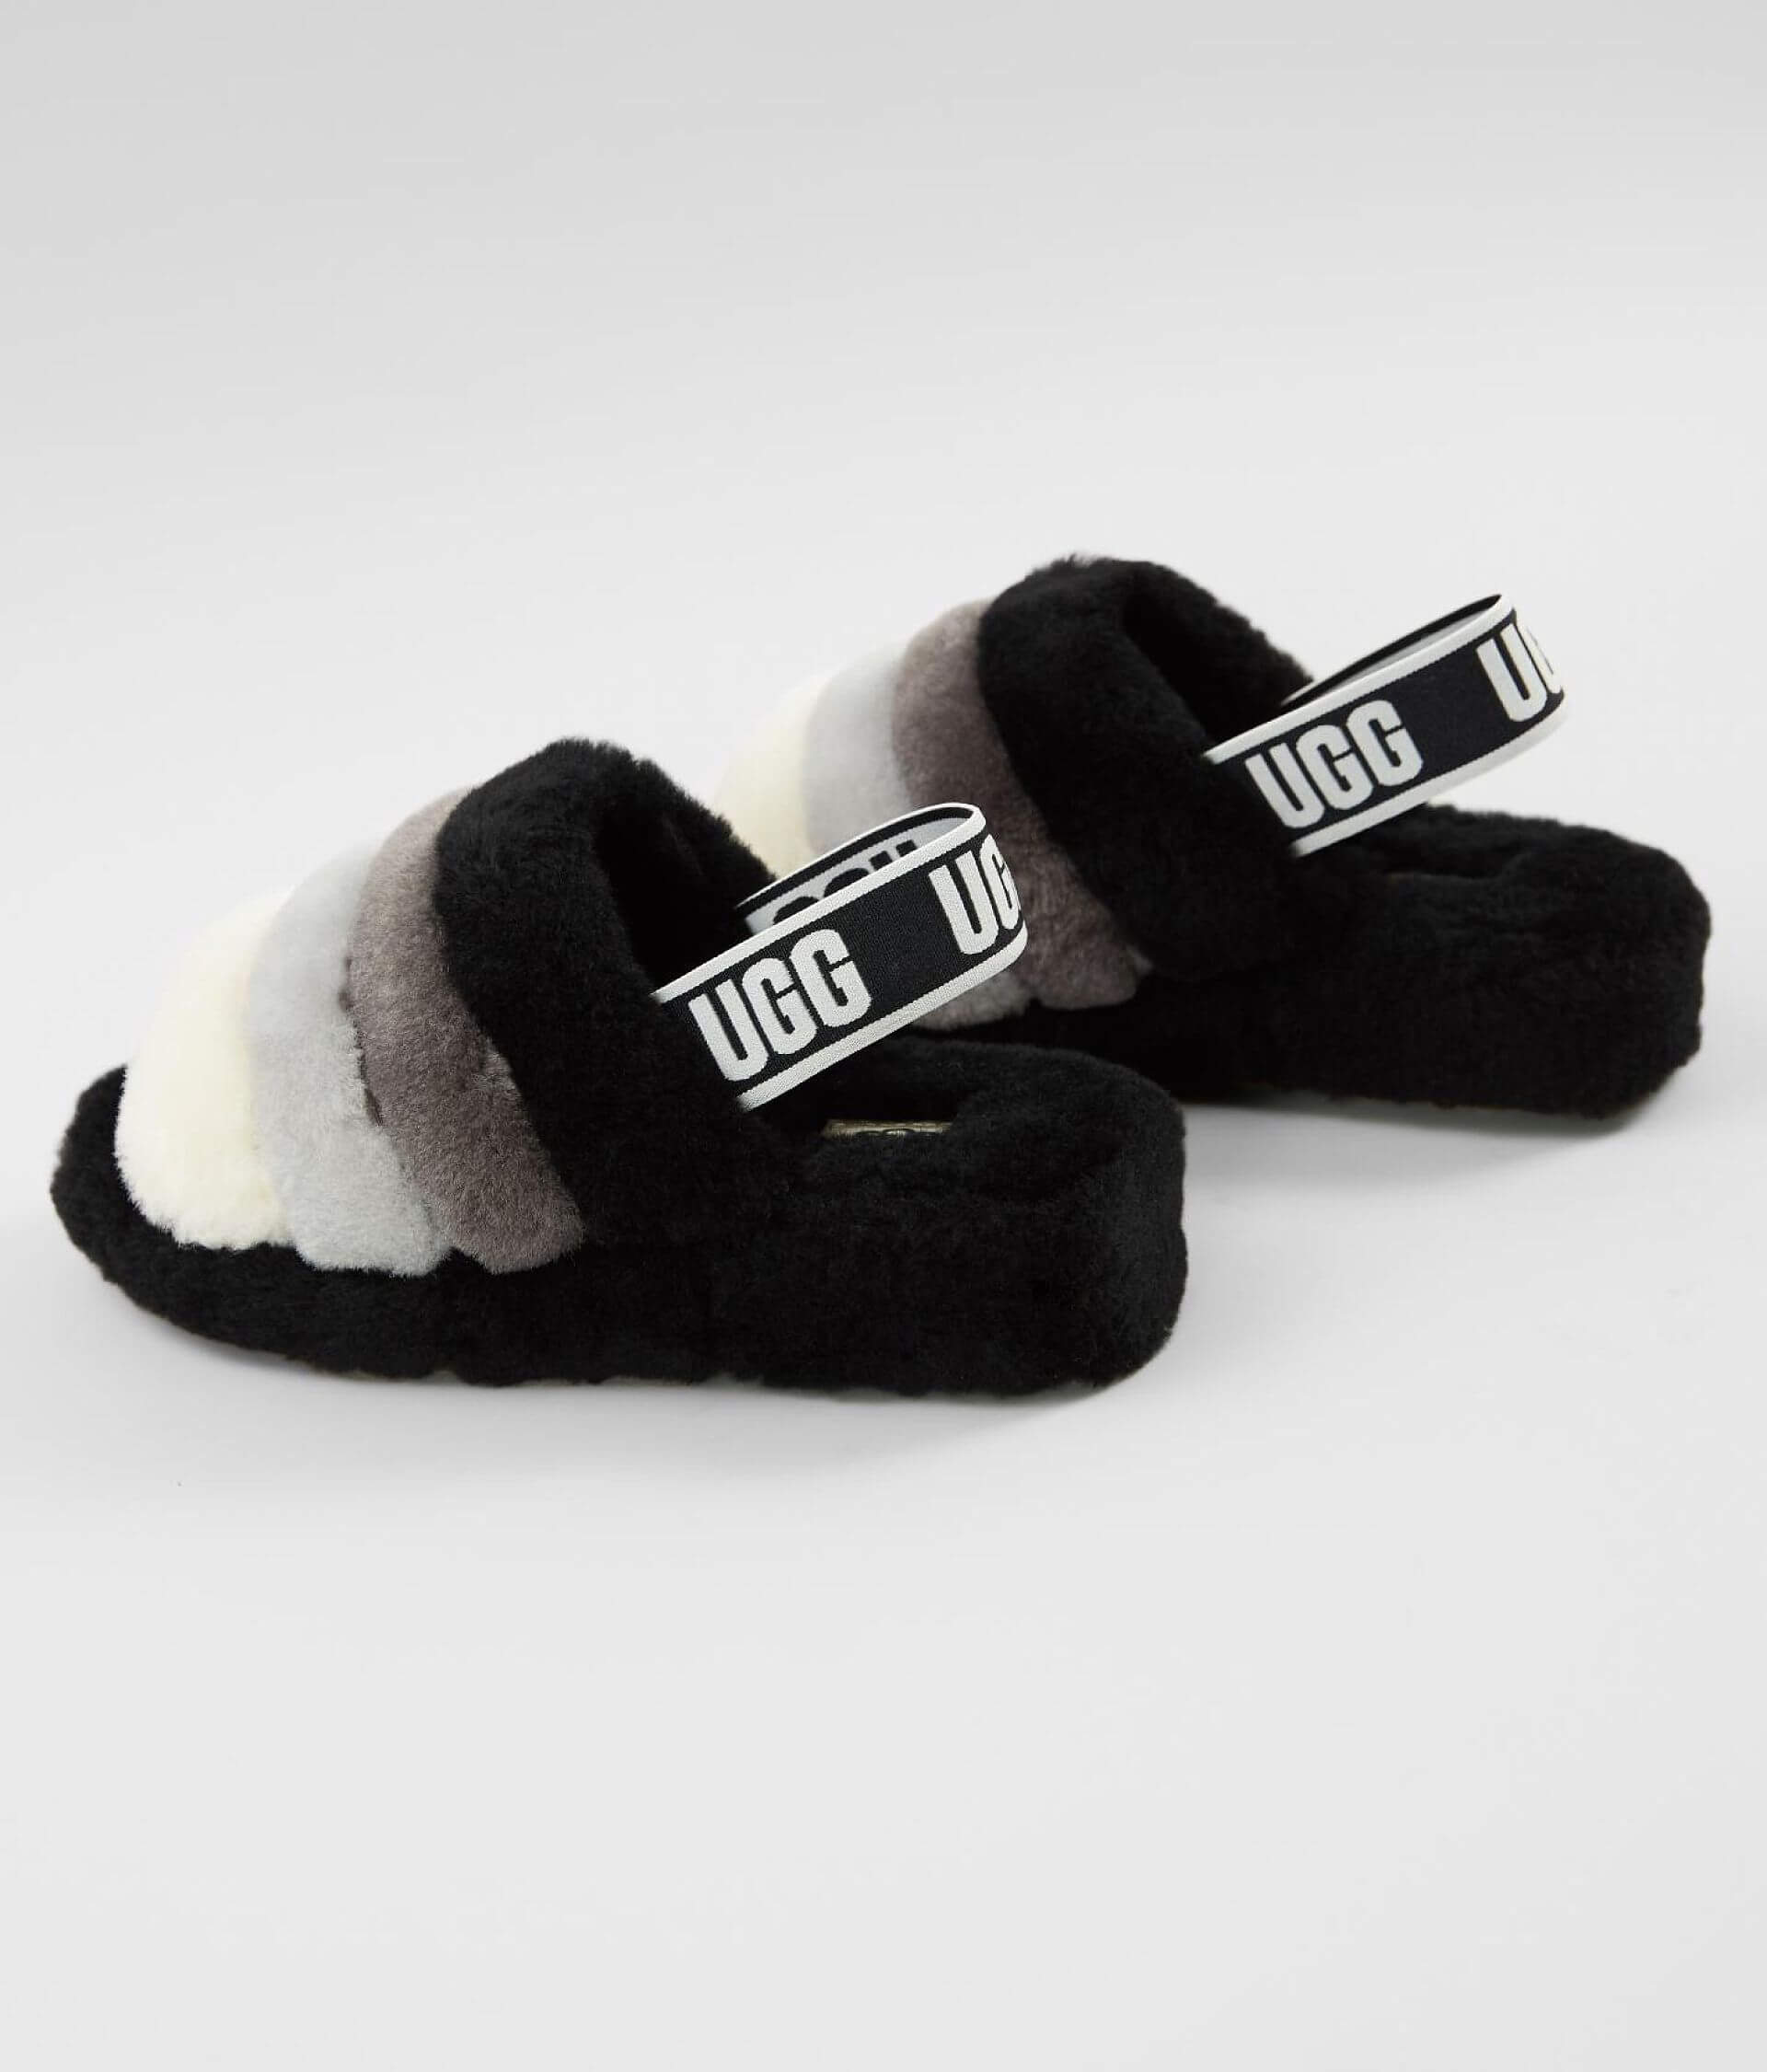 abf261807fb UGG® Fluff Yeah Slide - Women's Shoes in Black Multi | Buckle